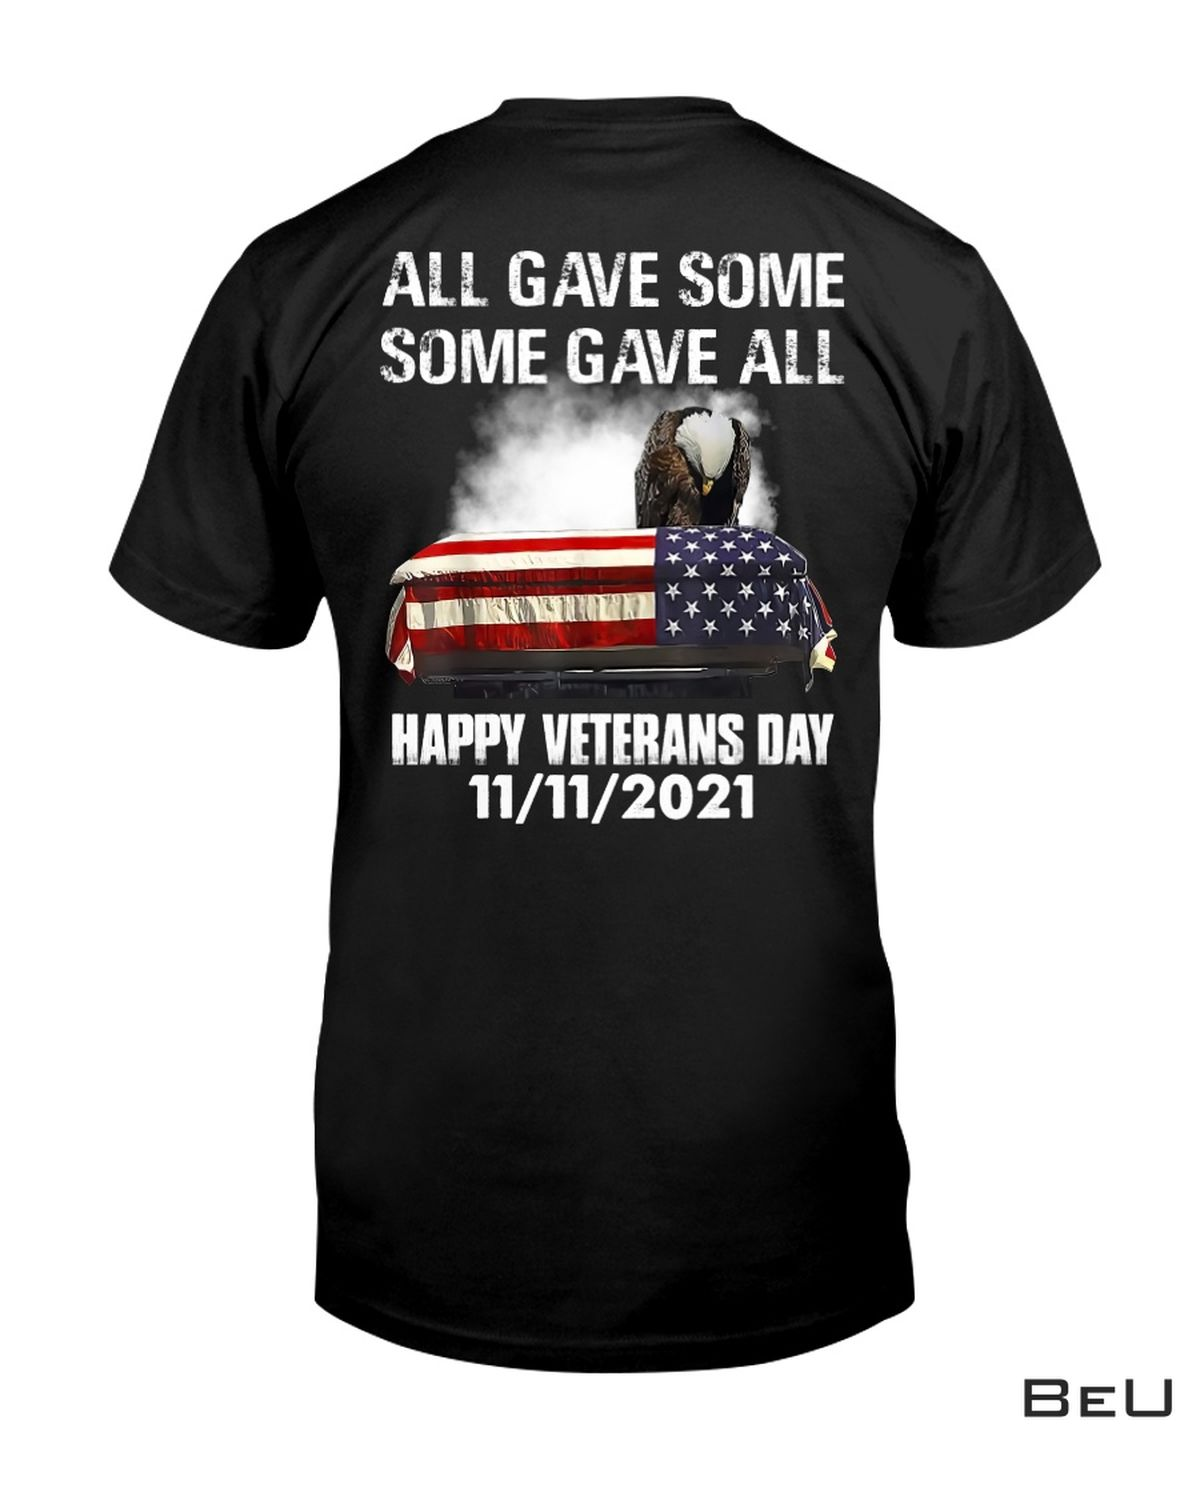 All Gave Some Some Gave All Veterans Day 2021 Shirt